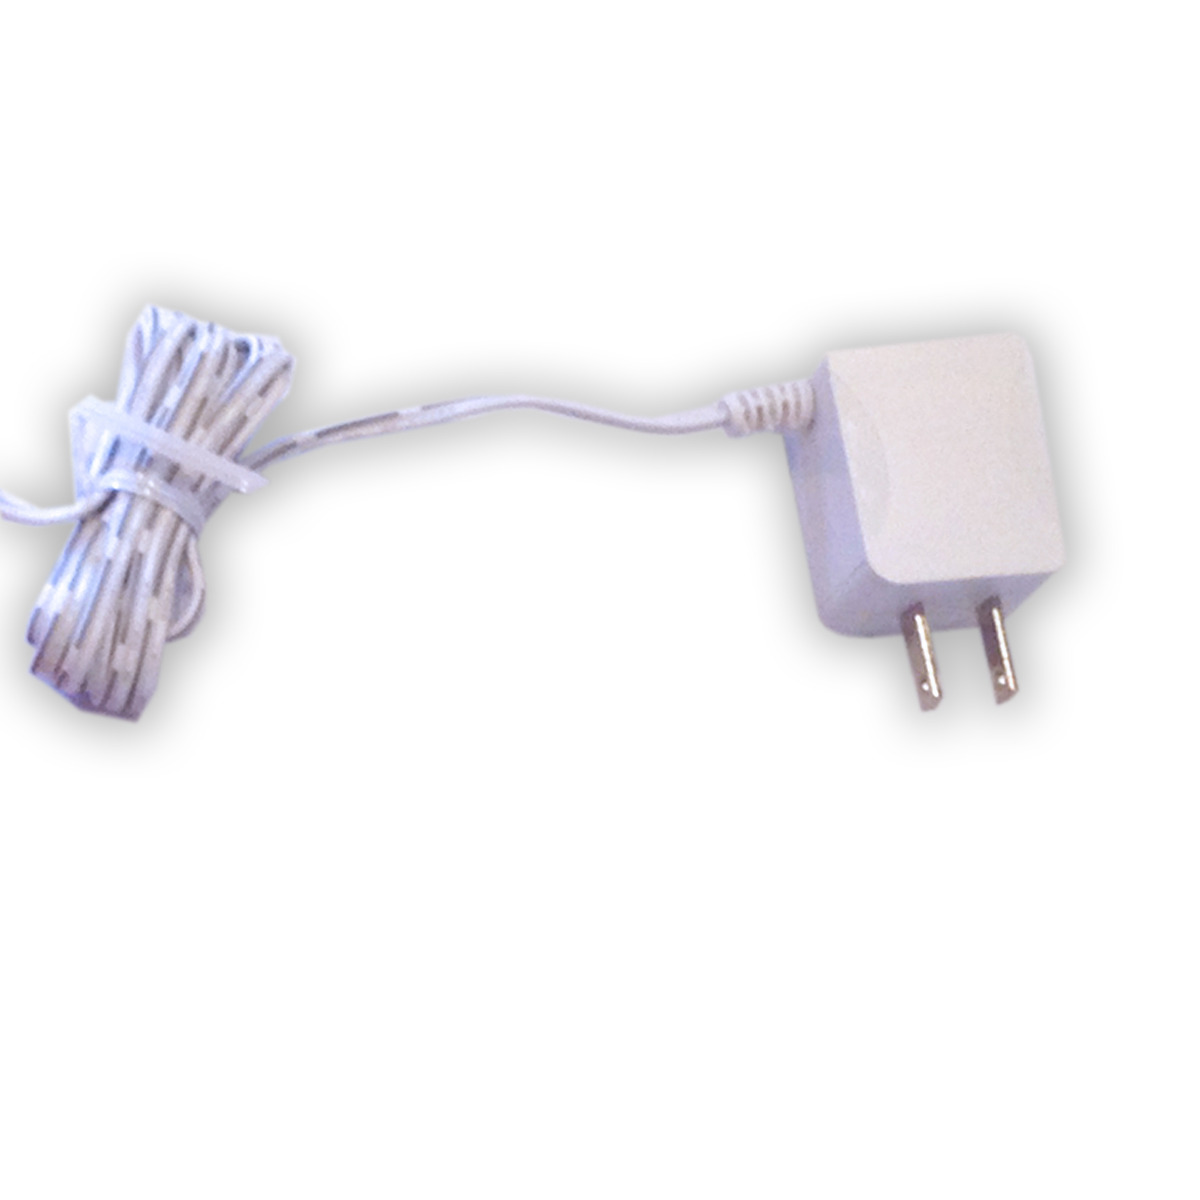 AC117-P Baby Monitor USB 5v Charger Cable Compatible with  Angelcare AC117